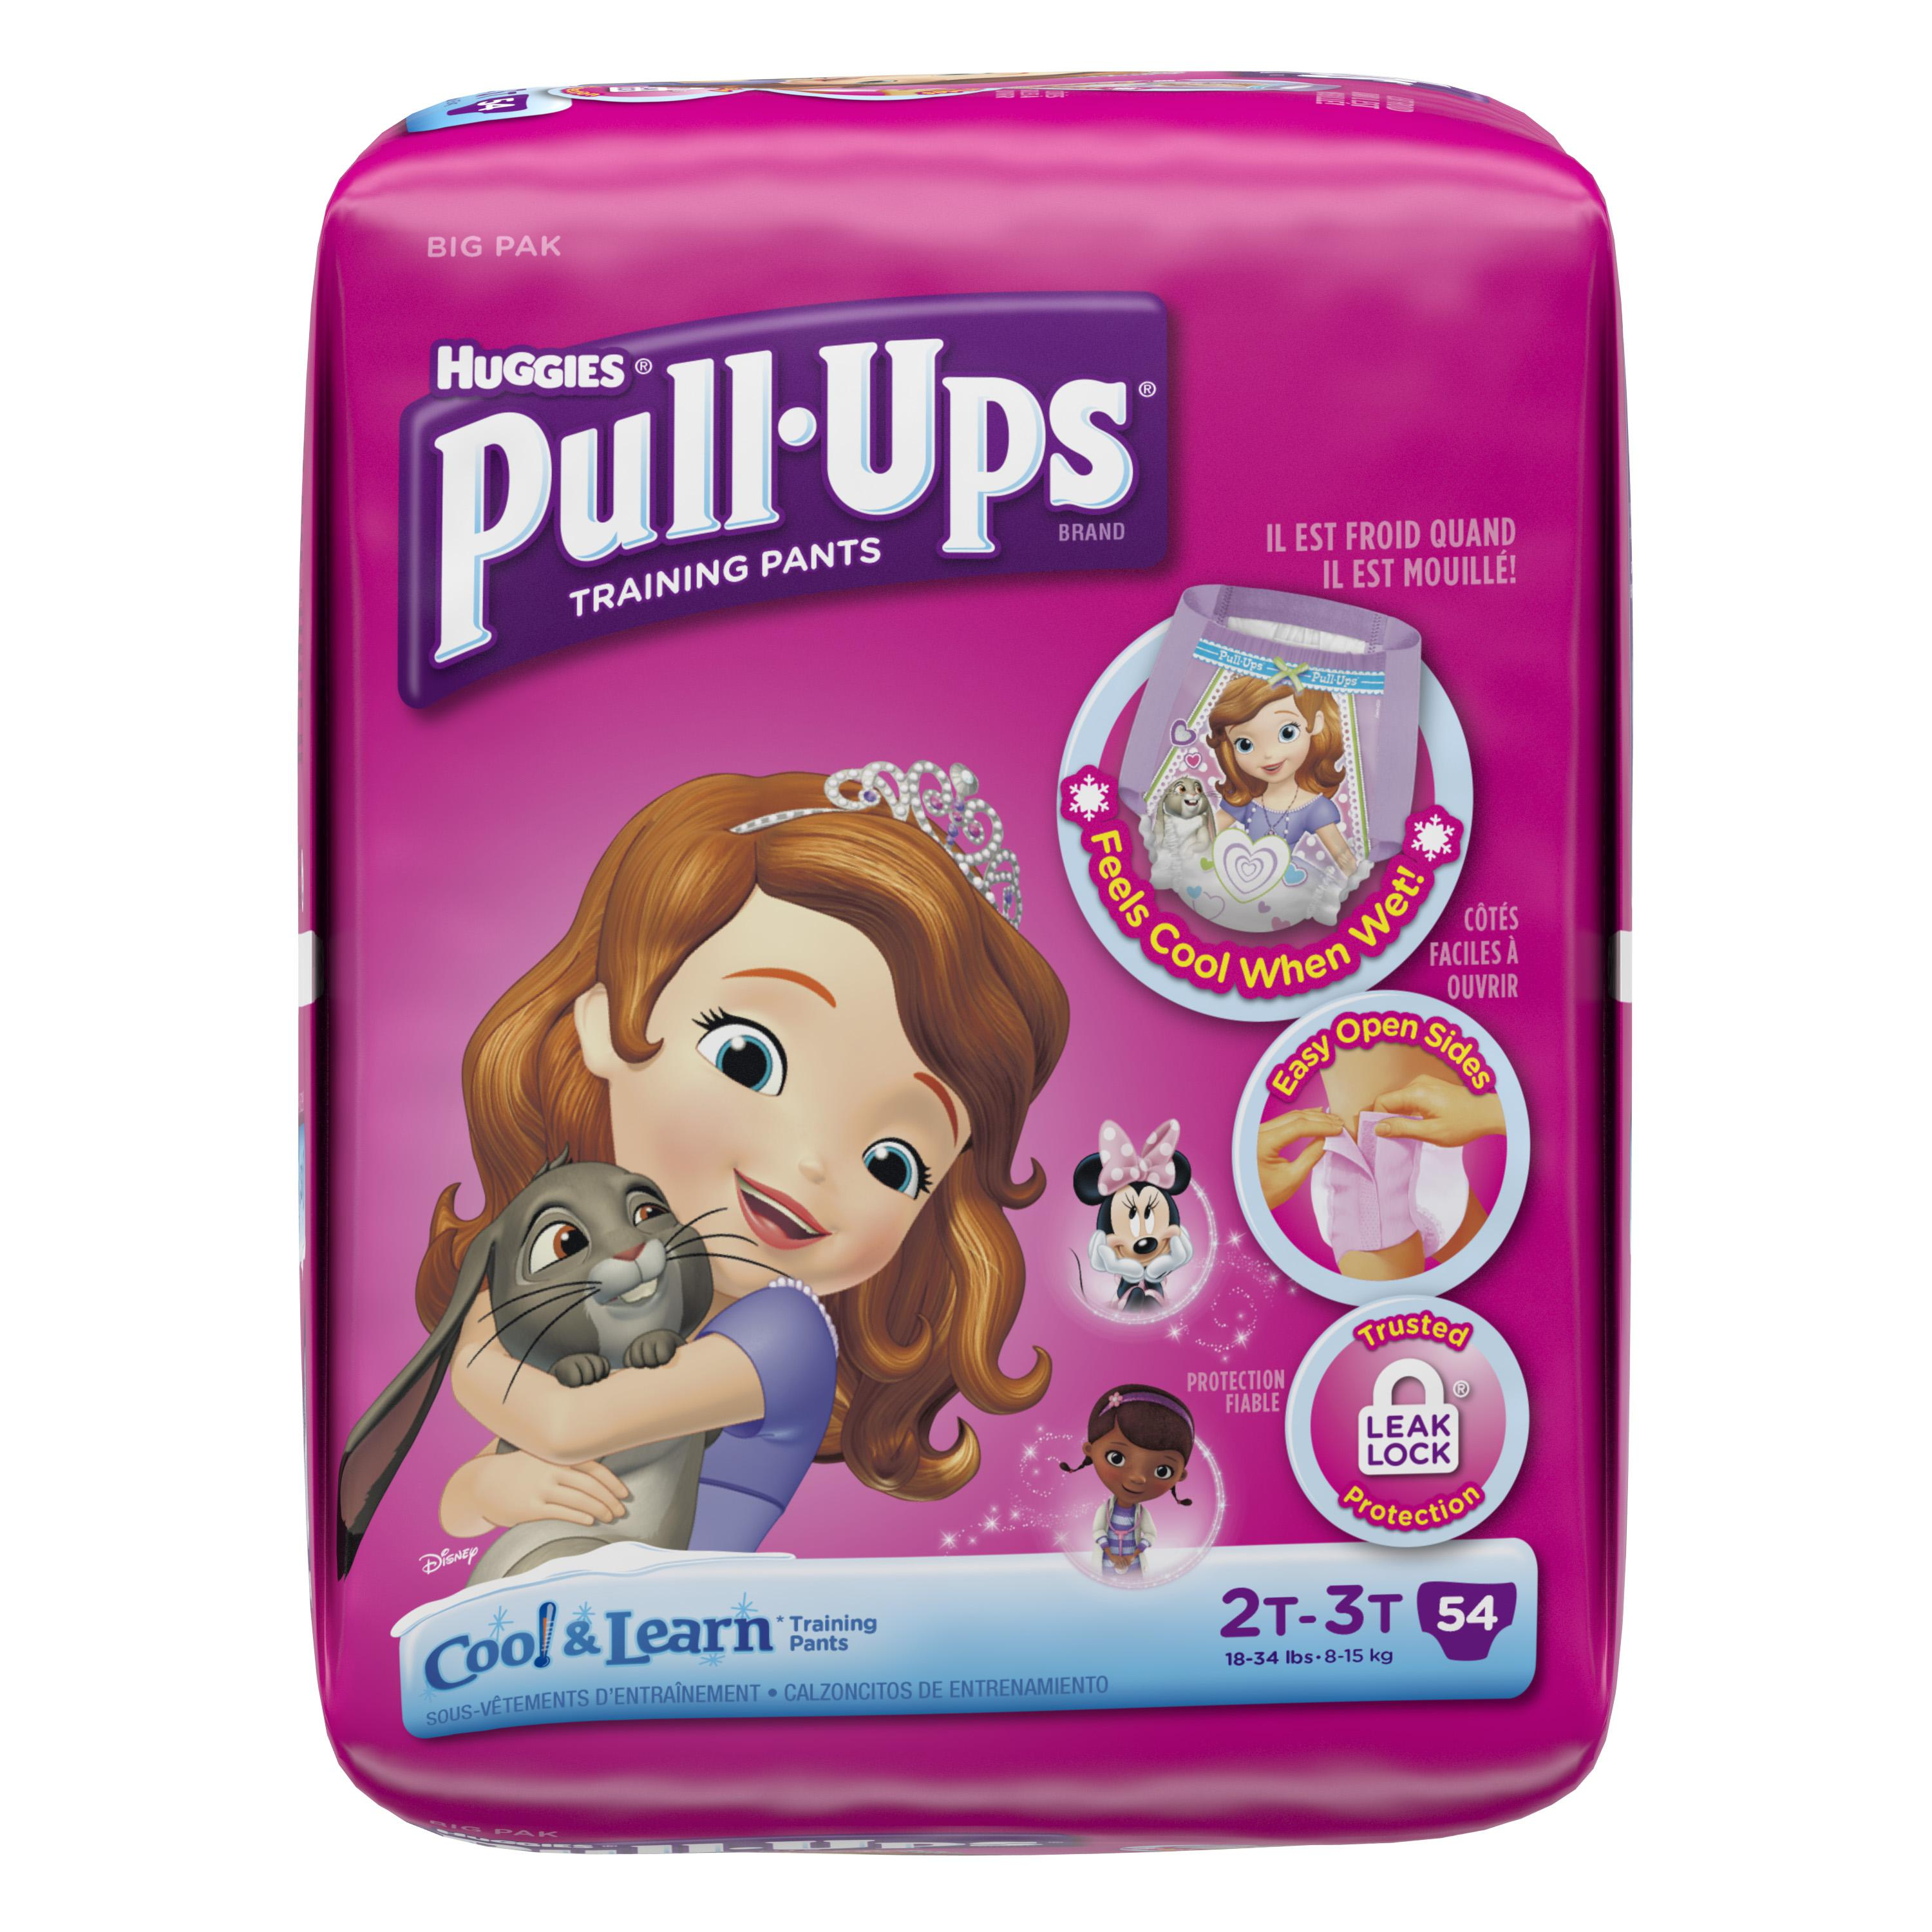 Pull-Ups Pull-Ups�� Training Pants with Cool & Learn�� for Girls 2T-3T